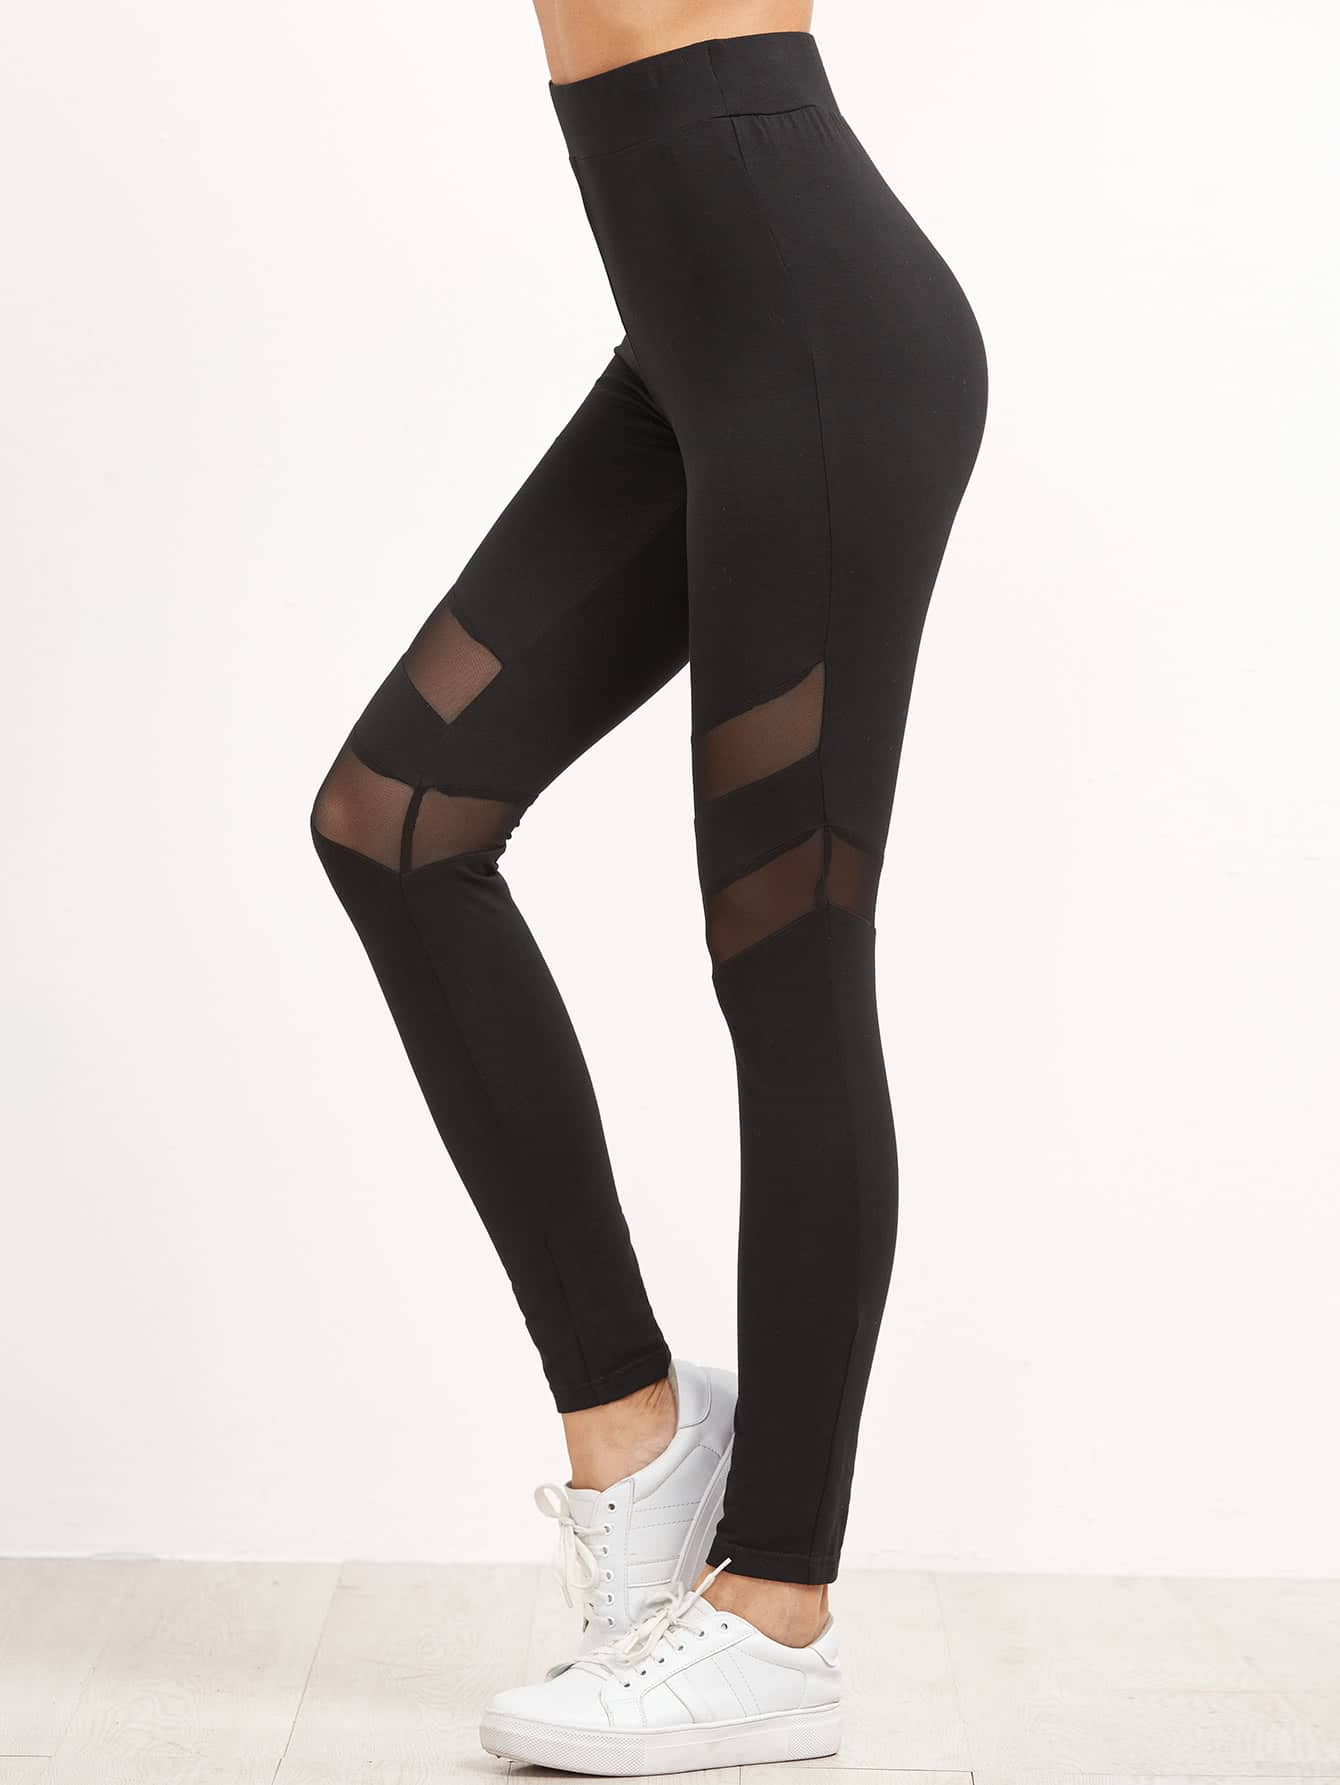 High Waist Leggings With Mesh Panel Detail leggings161118703